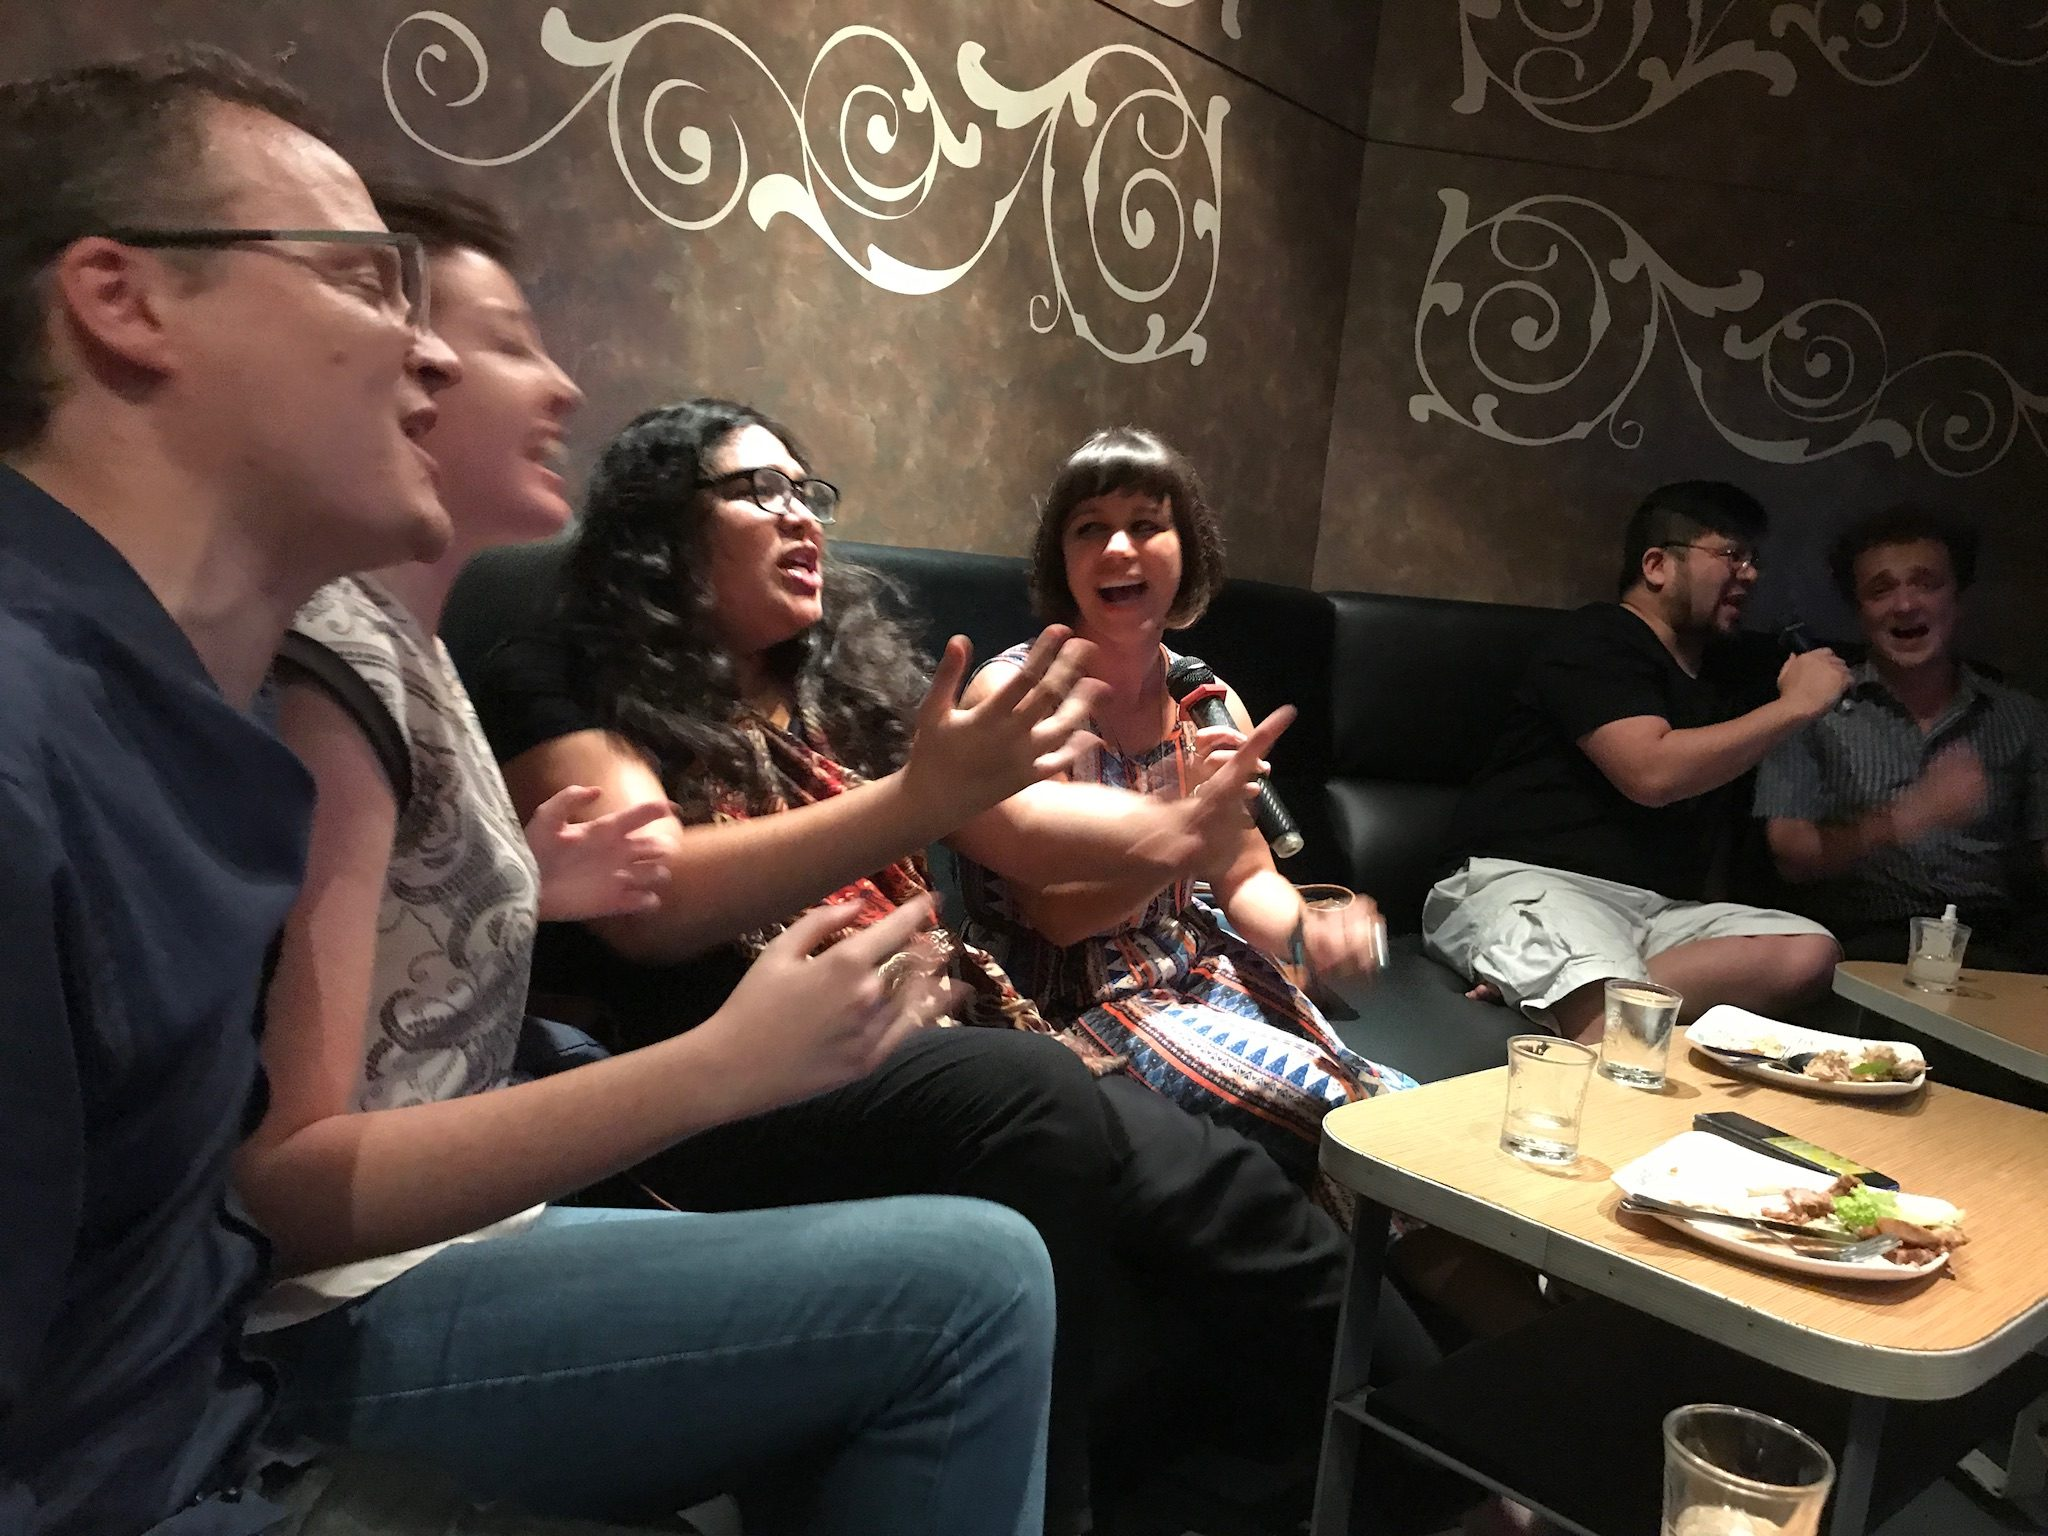 Gin, fags and karaoke … a typical night out in KL